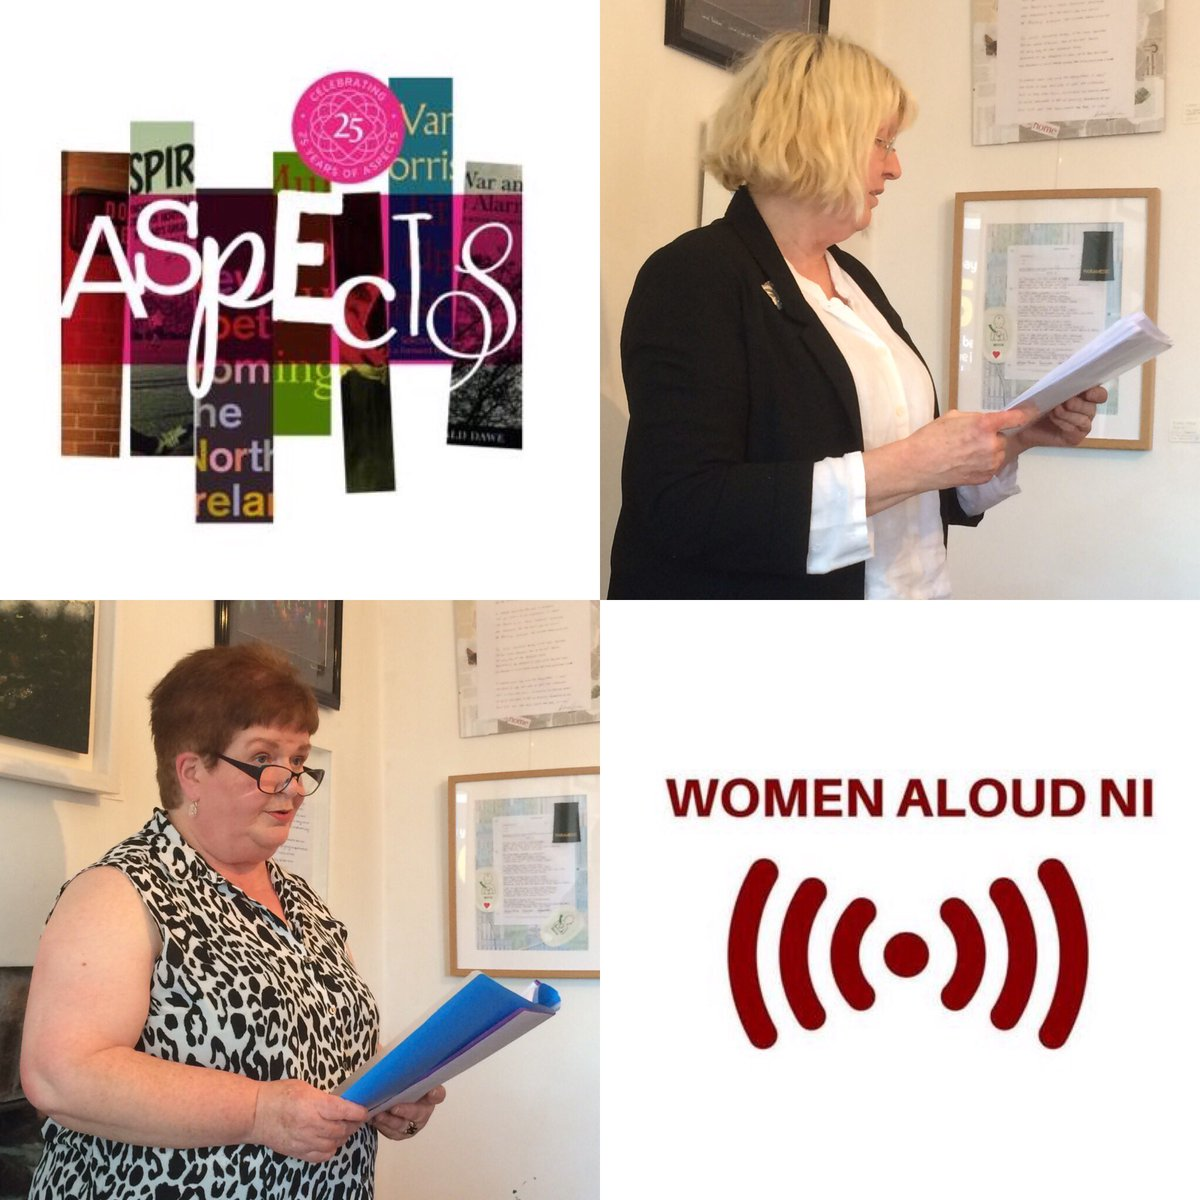 Photos from this afternoon's #WomenAloudNI poetry recital as part of @AspectsFestival https://t.co/fkaATcDcQr